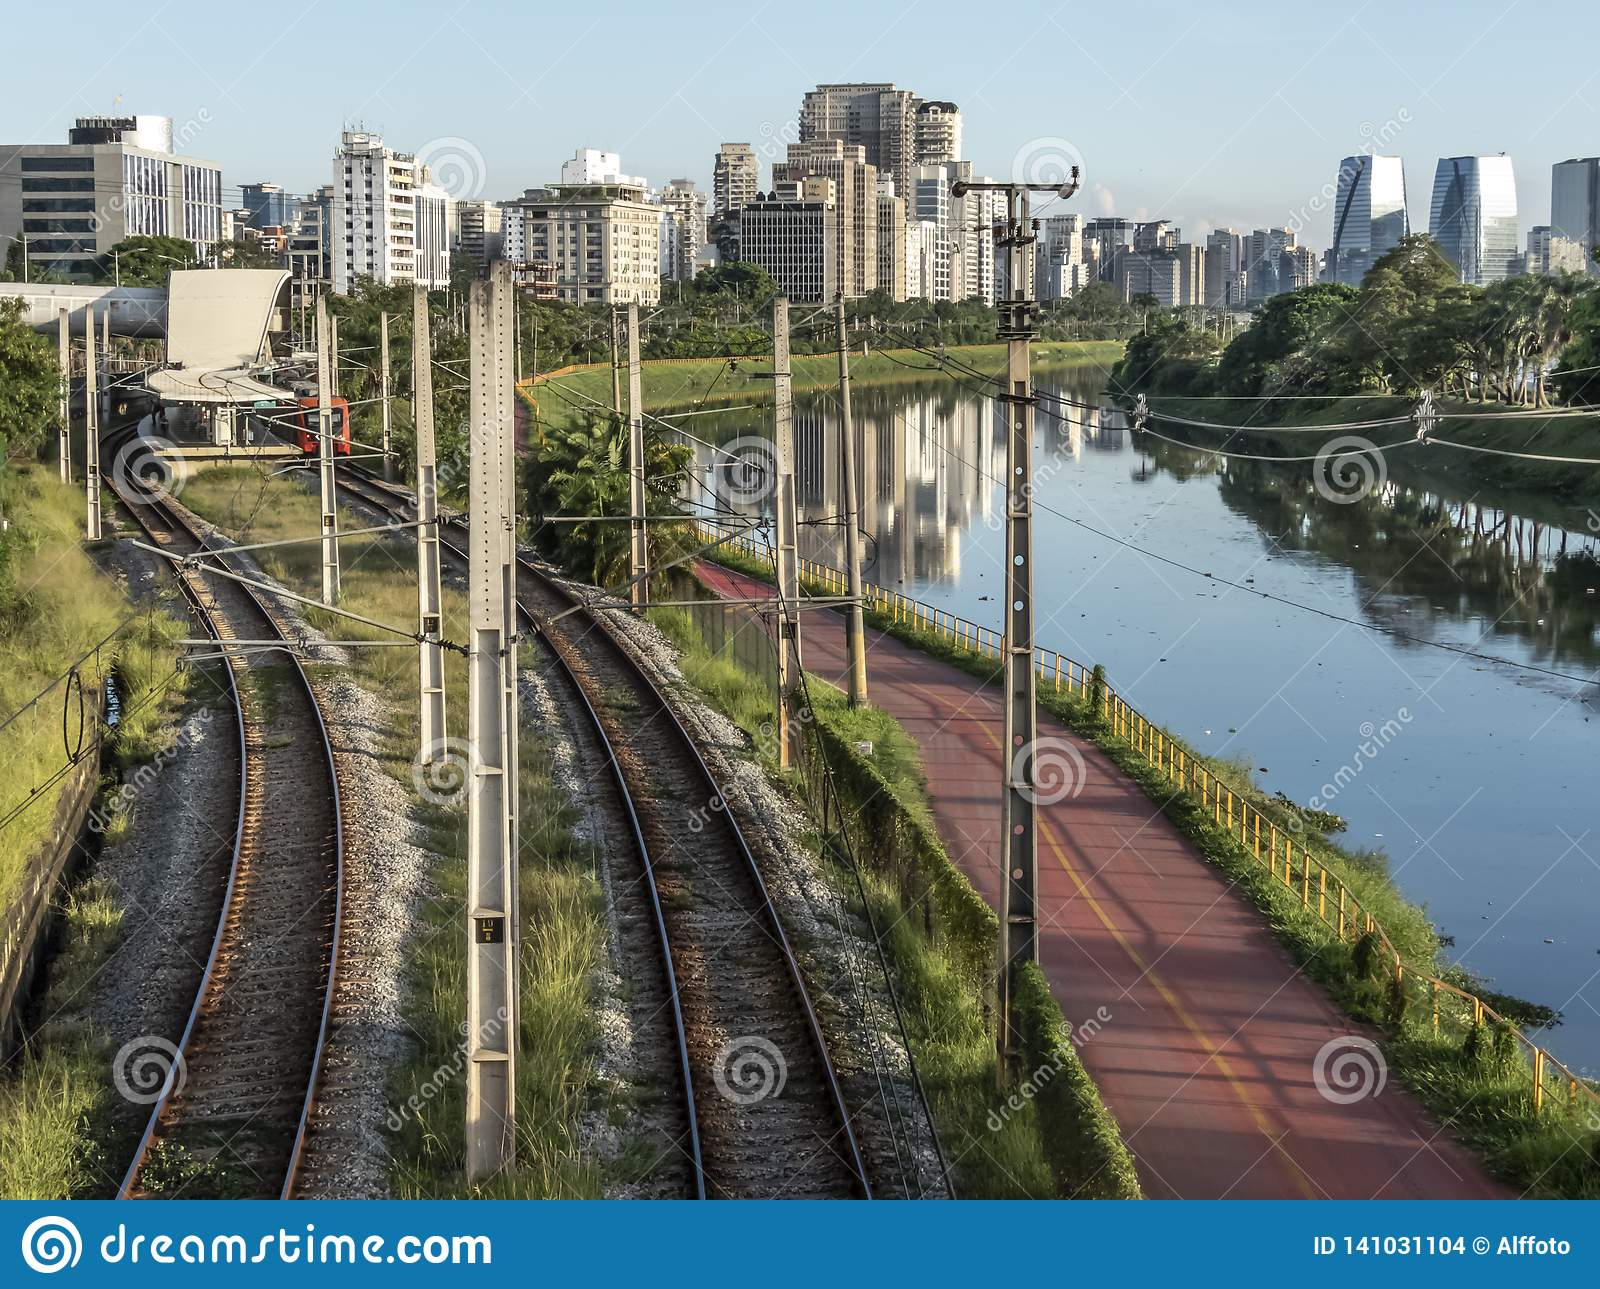 Cyclist on bicycle Lane near of Pinheiros River,